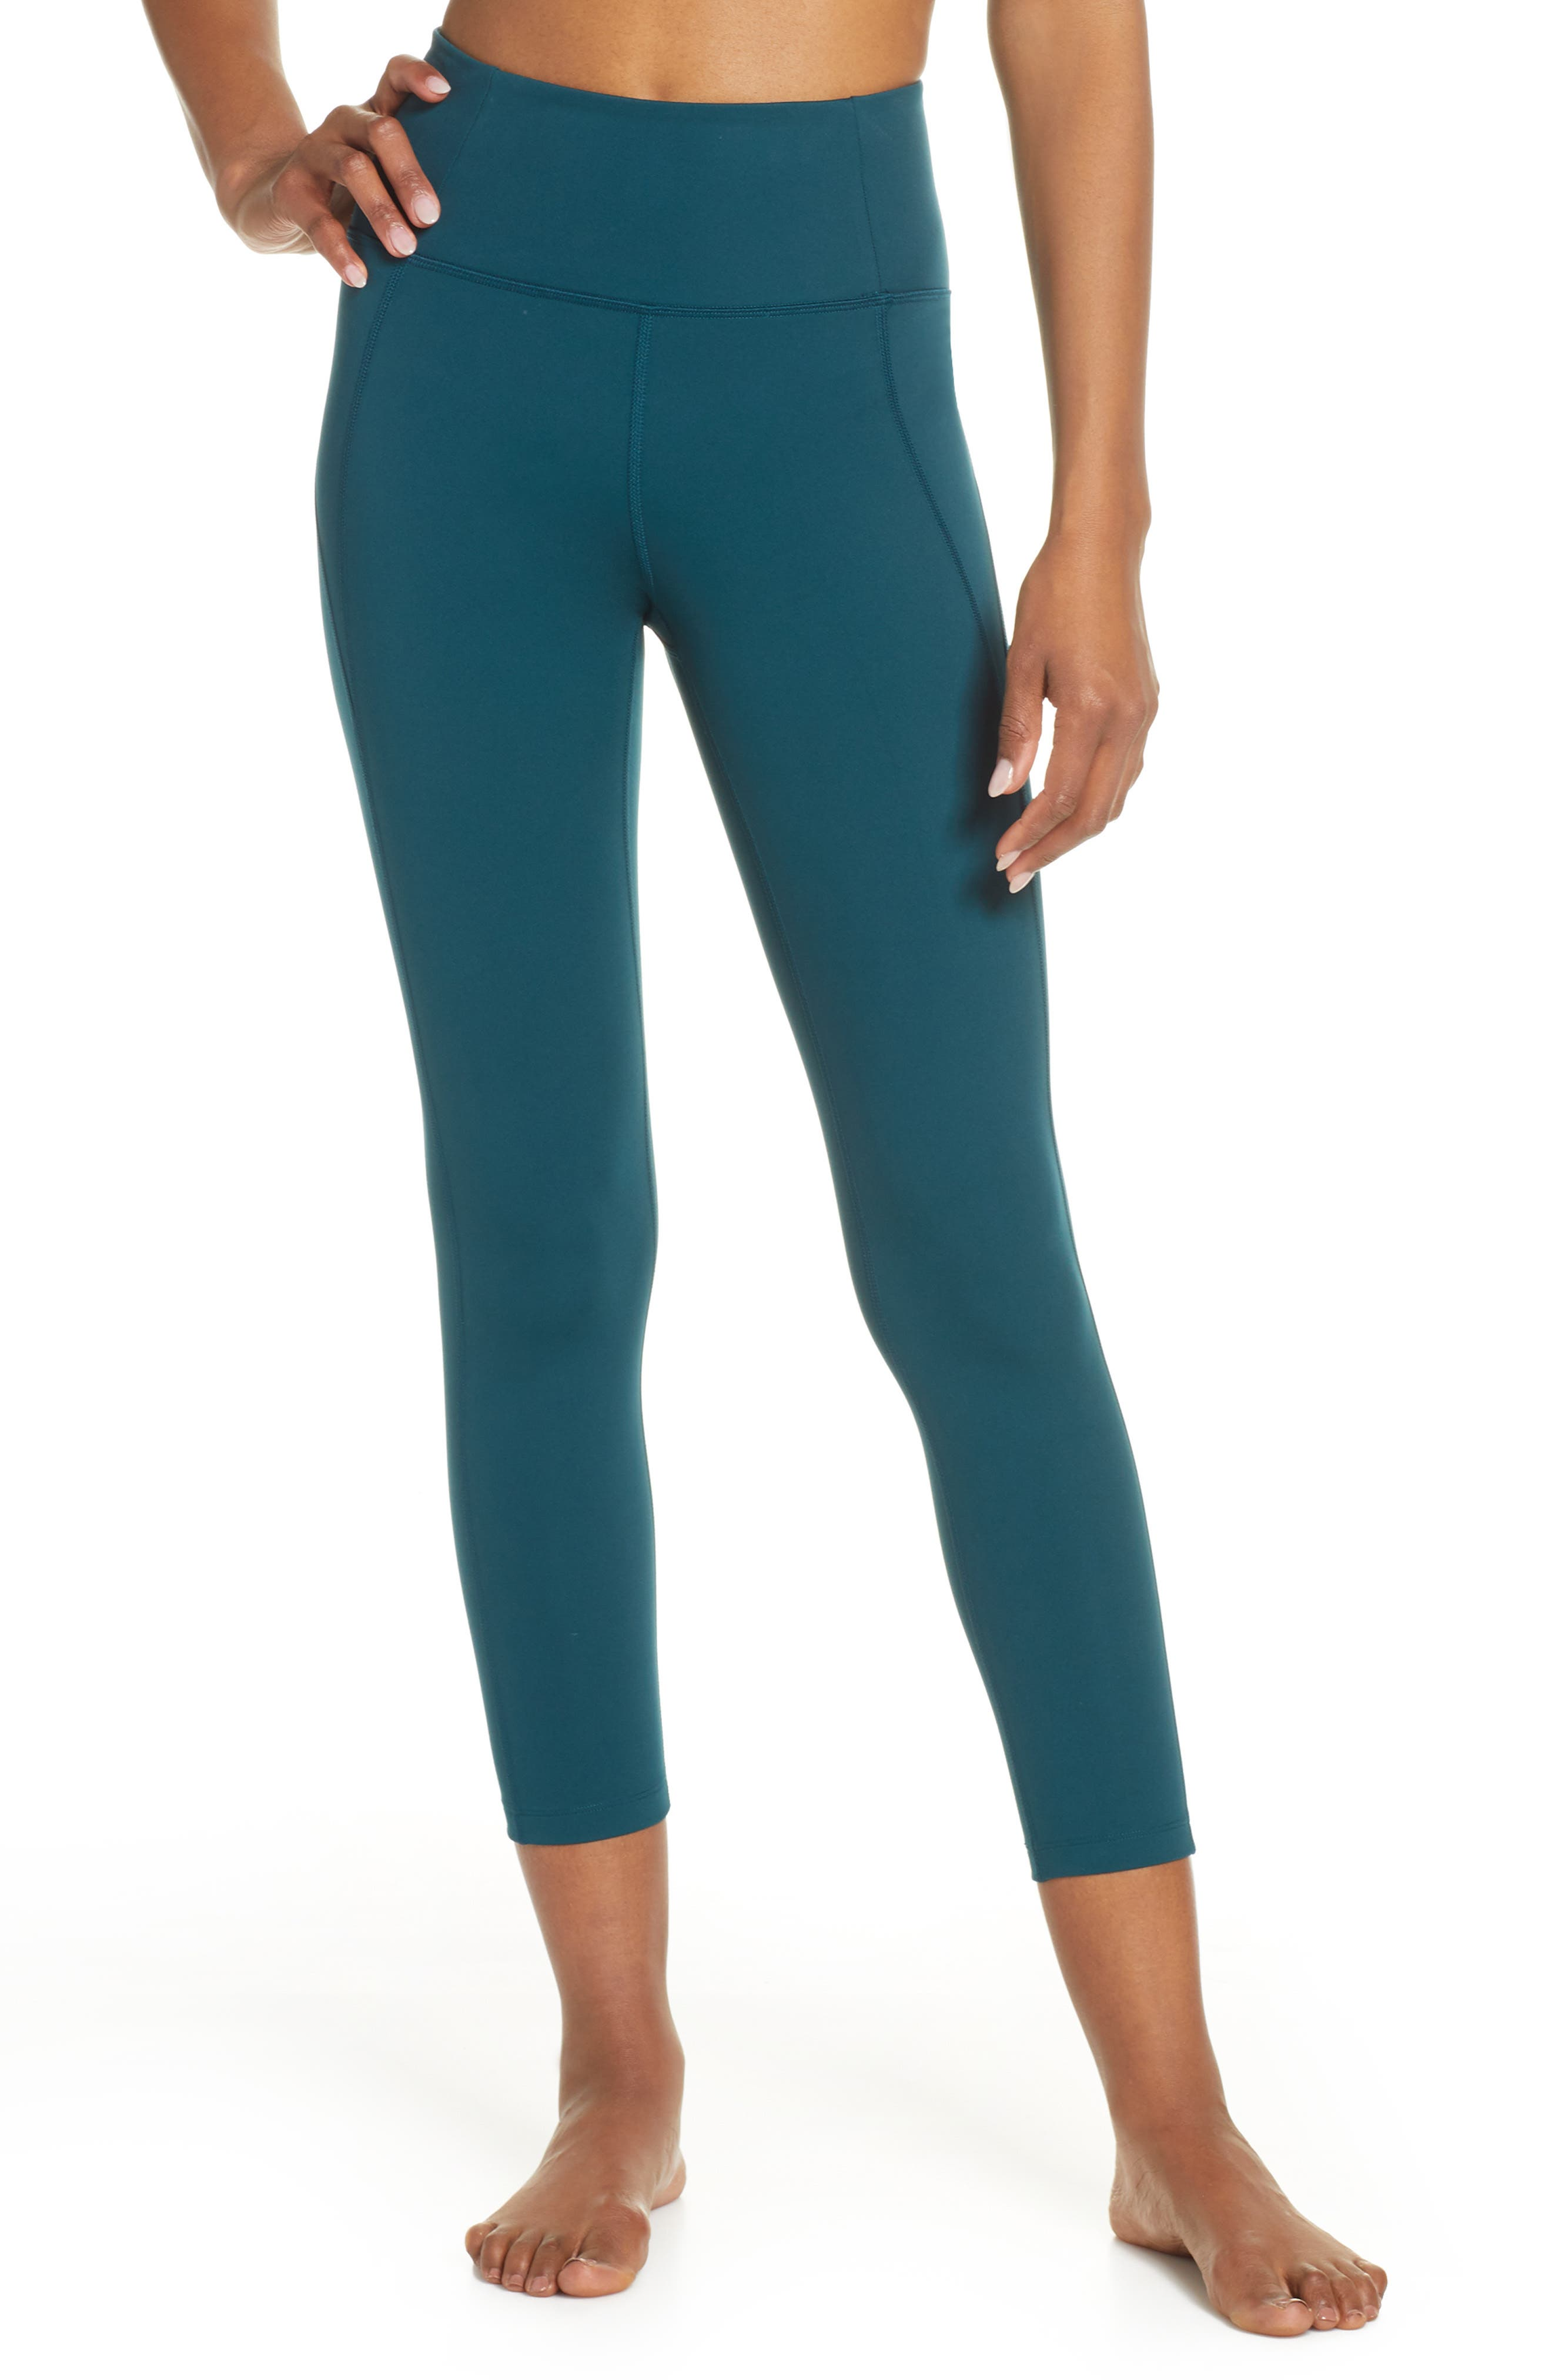 Girlfriend Collective High Waist 7/8 Leggings, Green